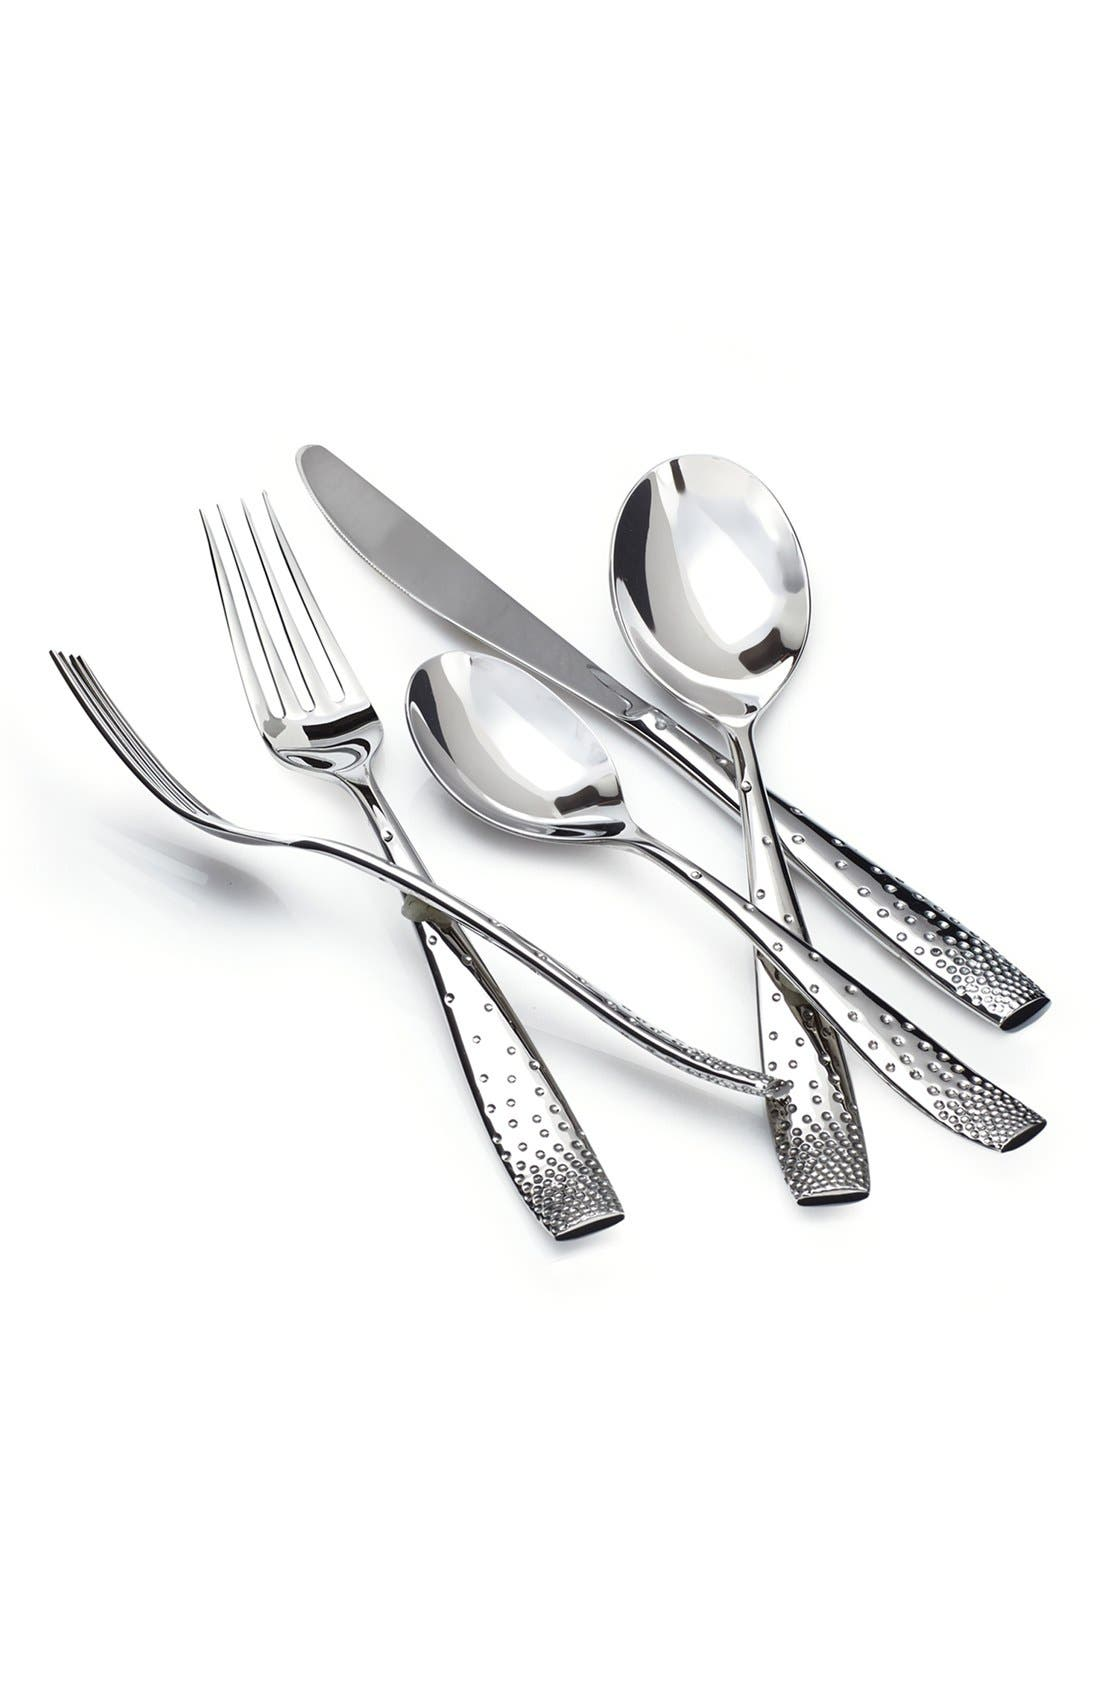 'Tilt' 5-Piece Place Setting,                             Main thumbnail 1, color,                             Silver